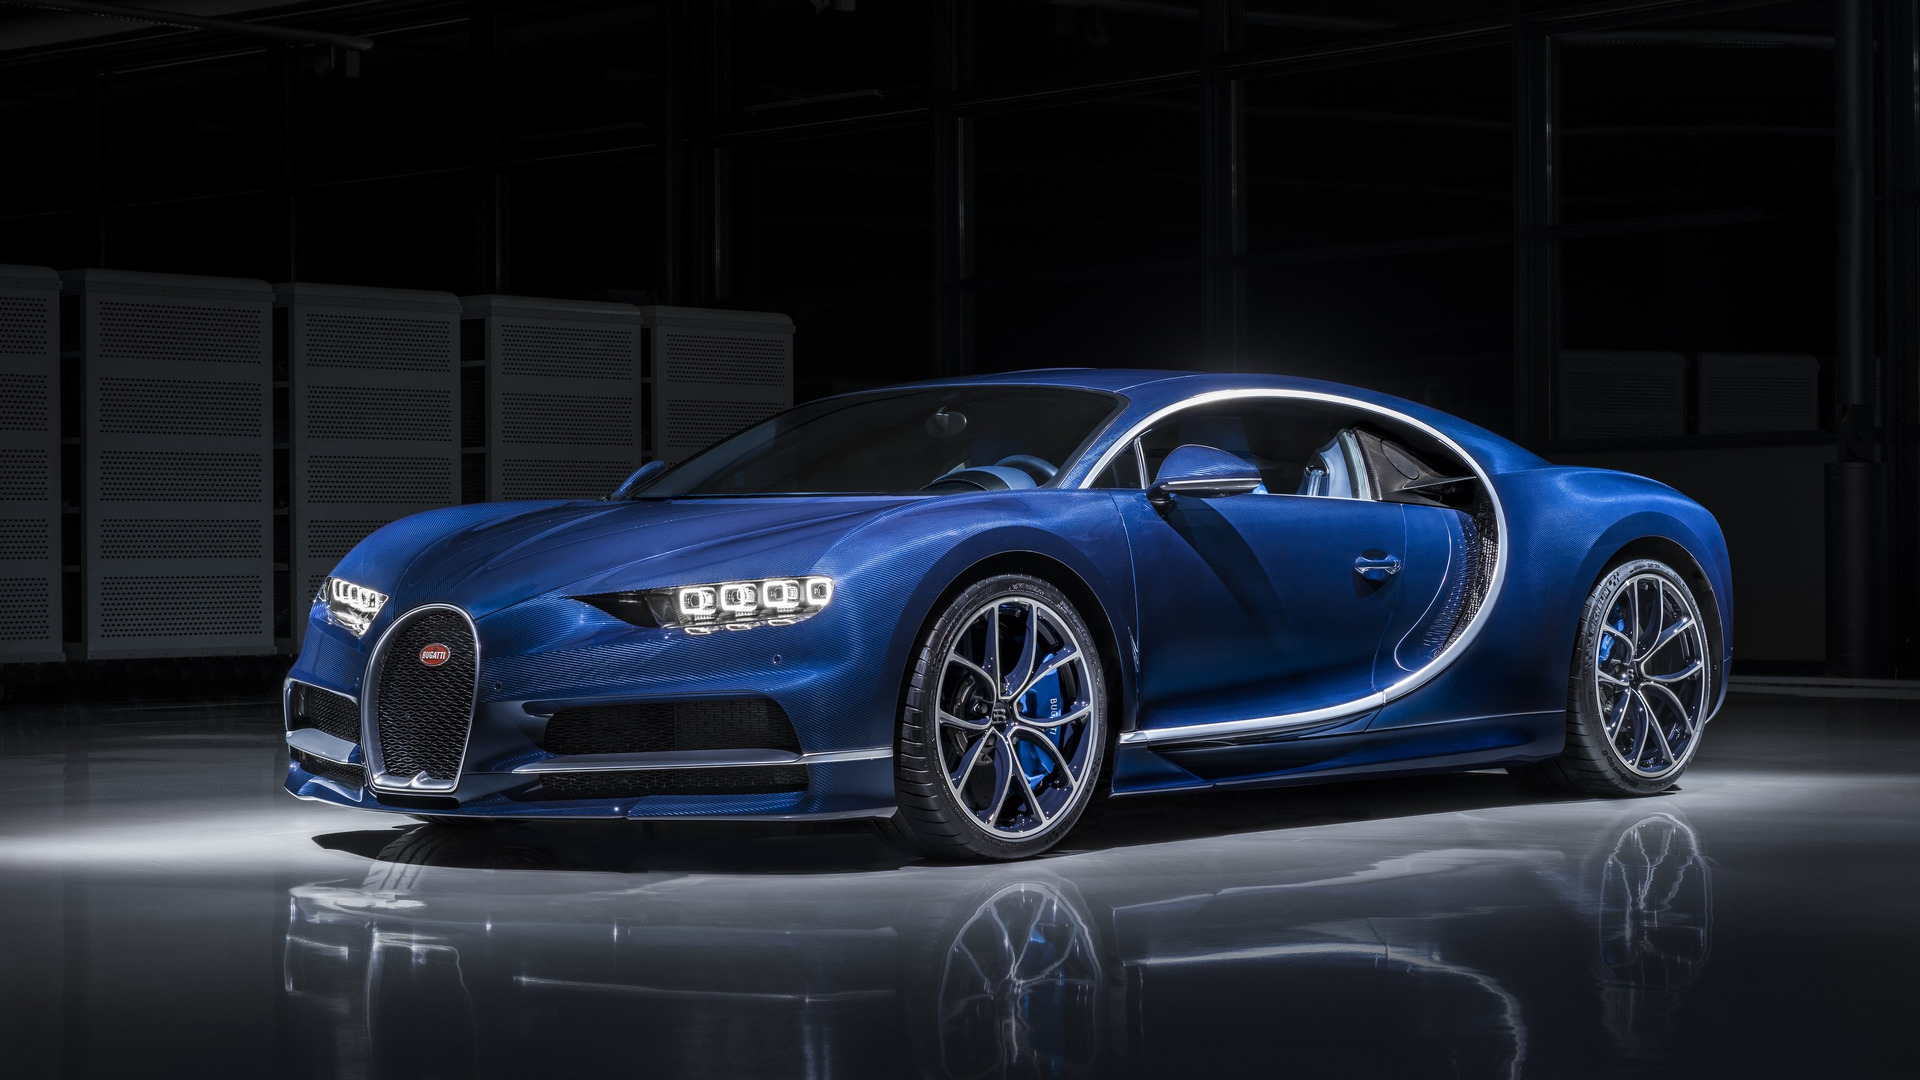 bugatti chiron in 39 bleu royal 39 exposed carbon fibre will. Black Bedroom Furniture Sets. Home Design Ideas